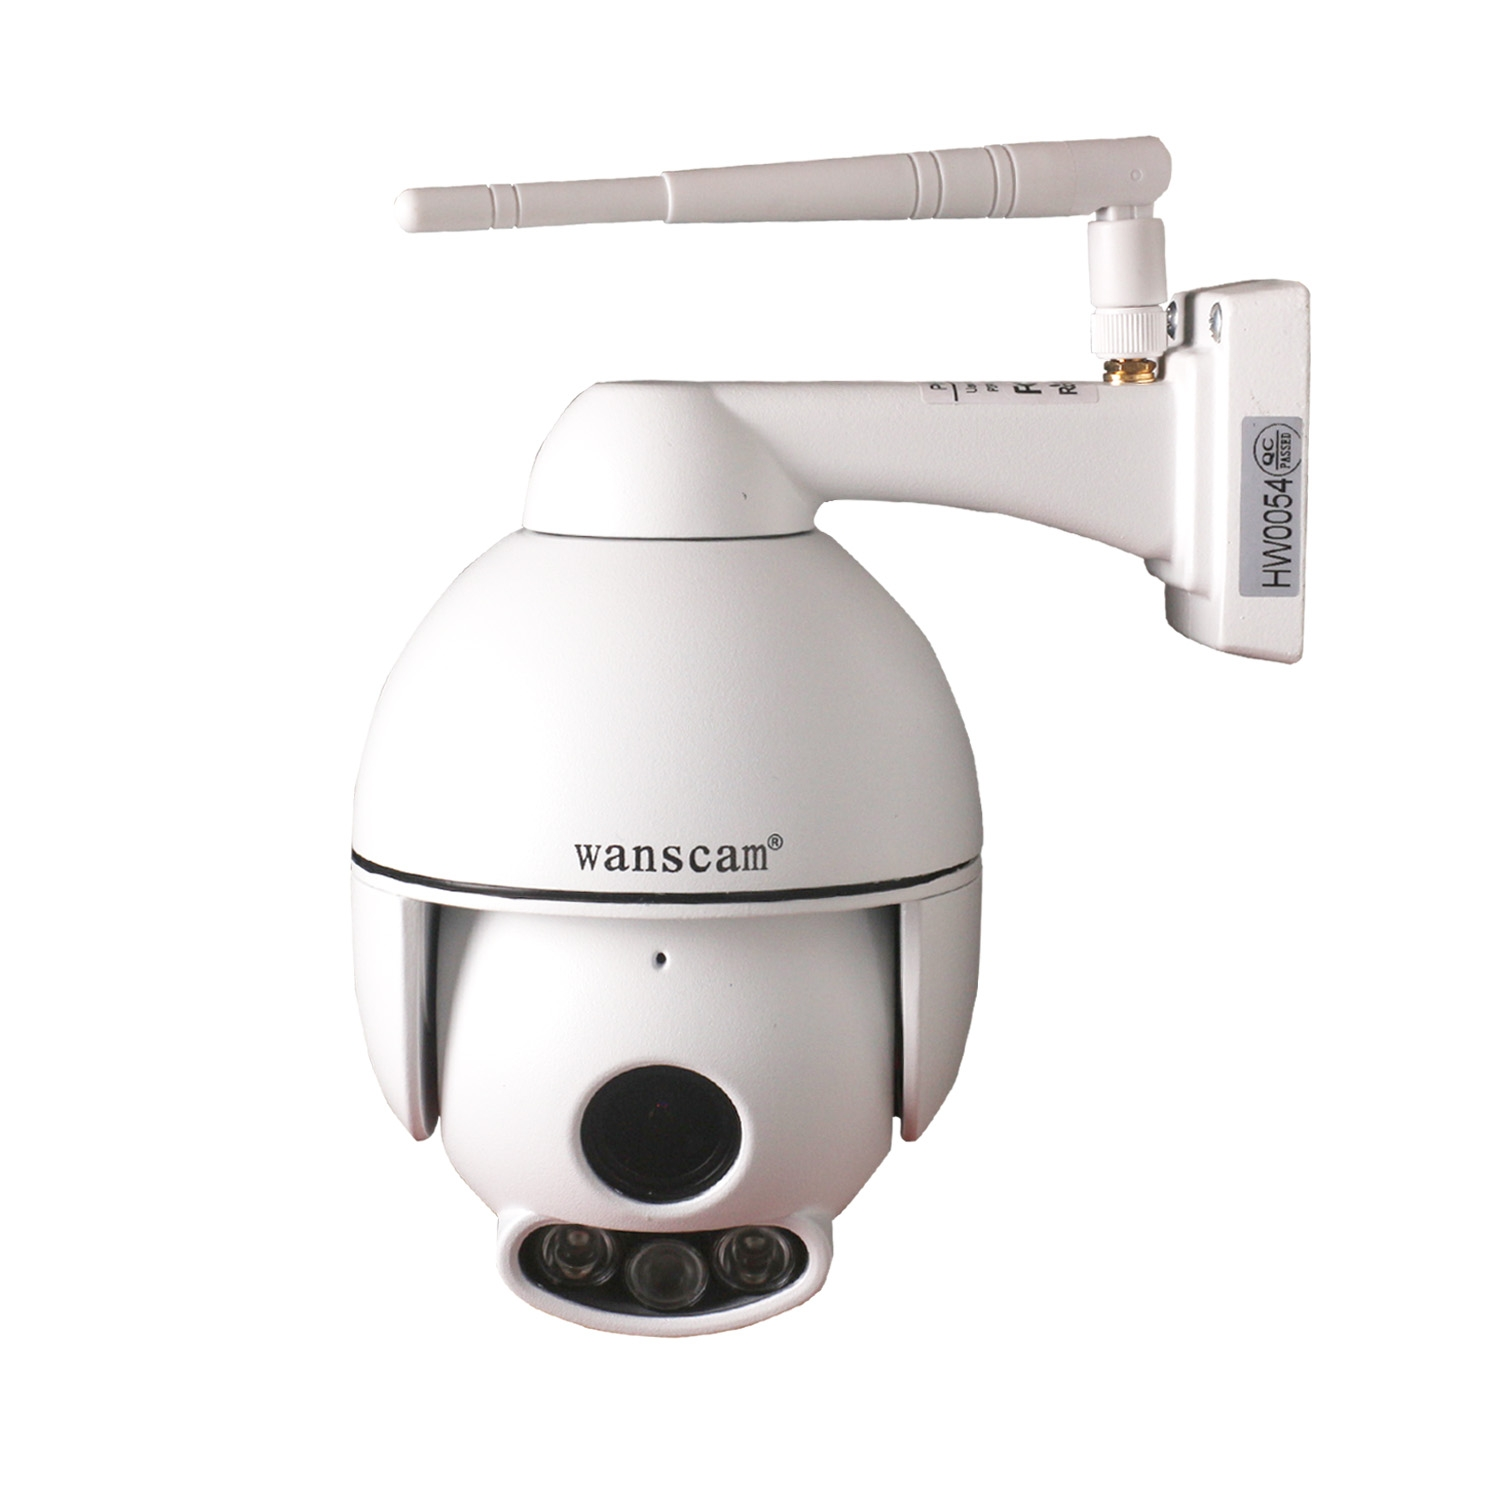 WIFI IP Camera FULL HD 1080P 4x Zoom met Opname Functie